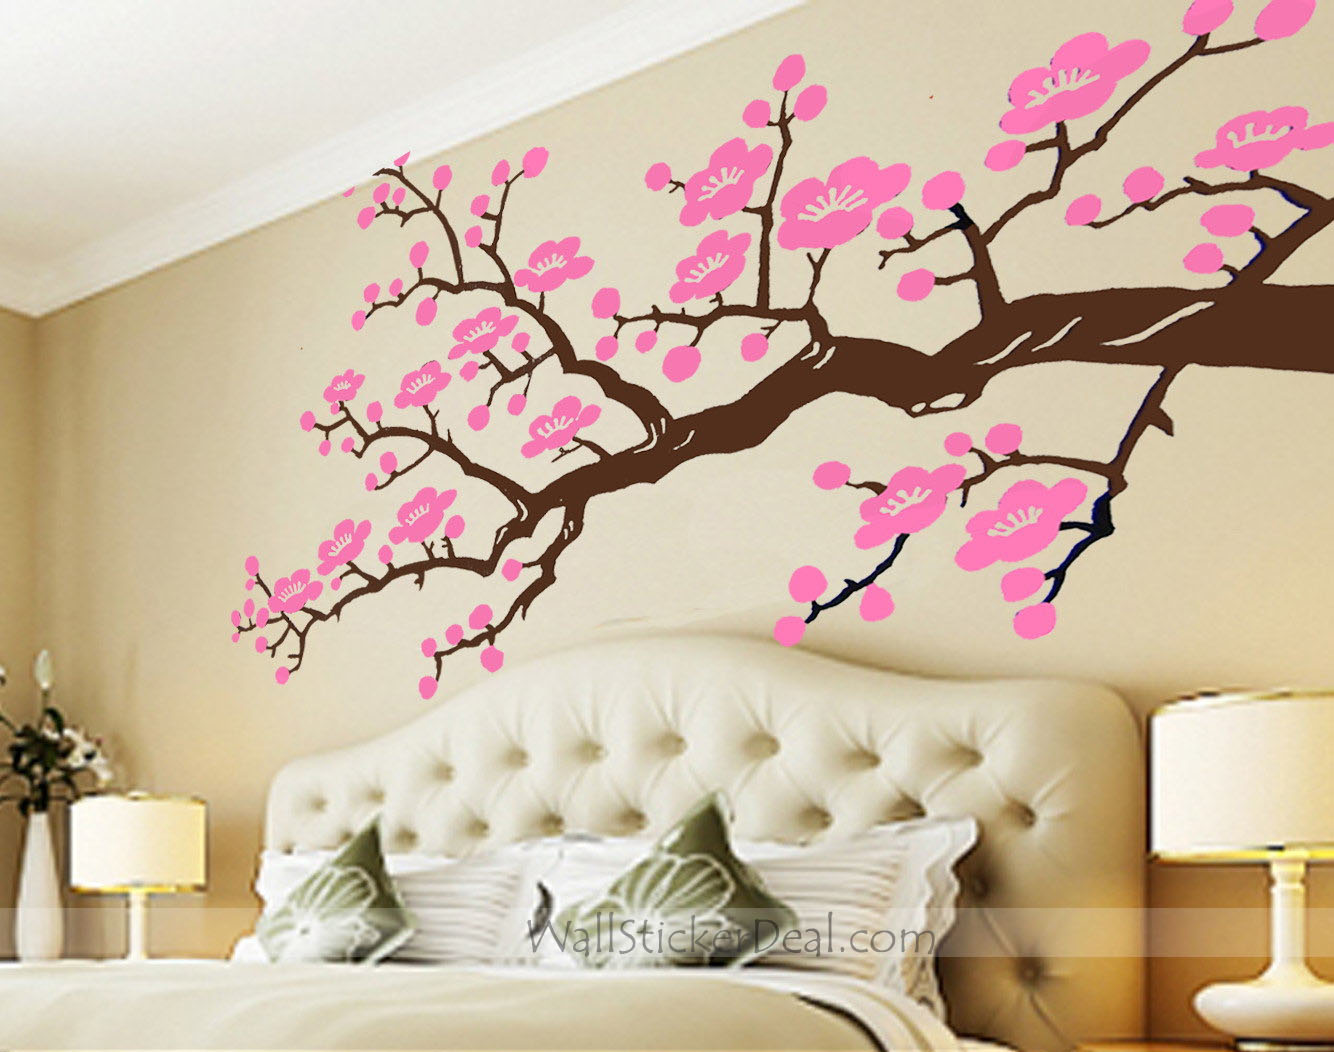 Cherry Blossom Branches Wall Stickers Home Decorating Photo 32459216 Fanpop